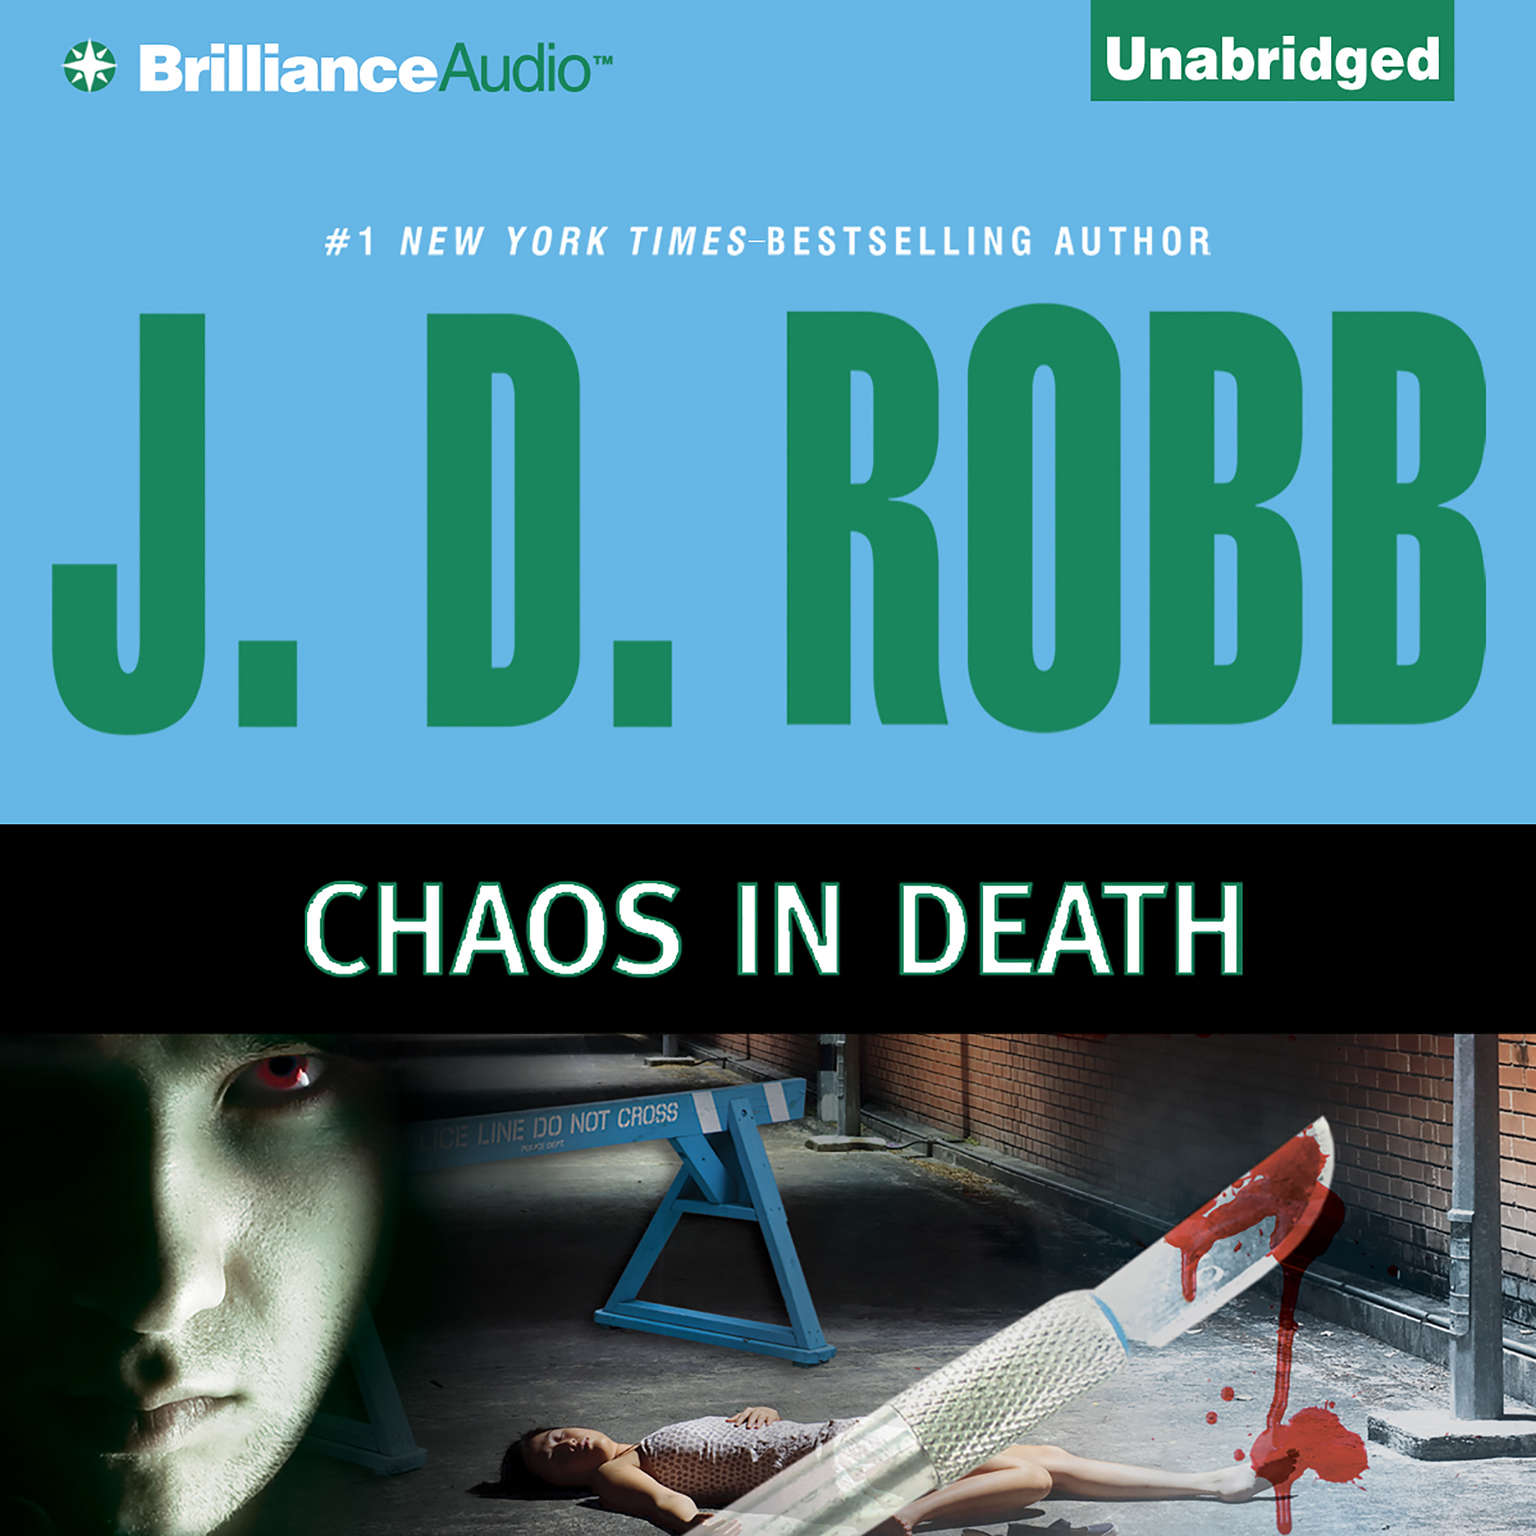 Celebrity in Death (Audiobook) by J. D. Robb | Audible.com